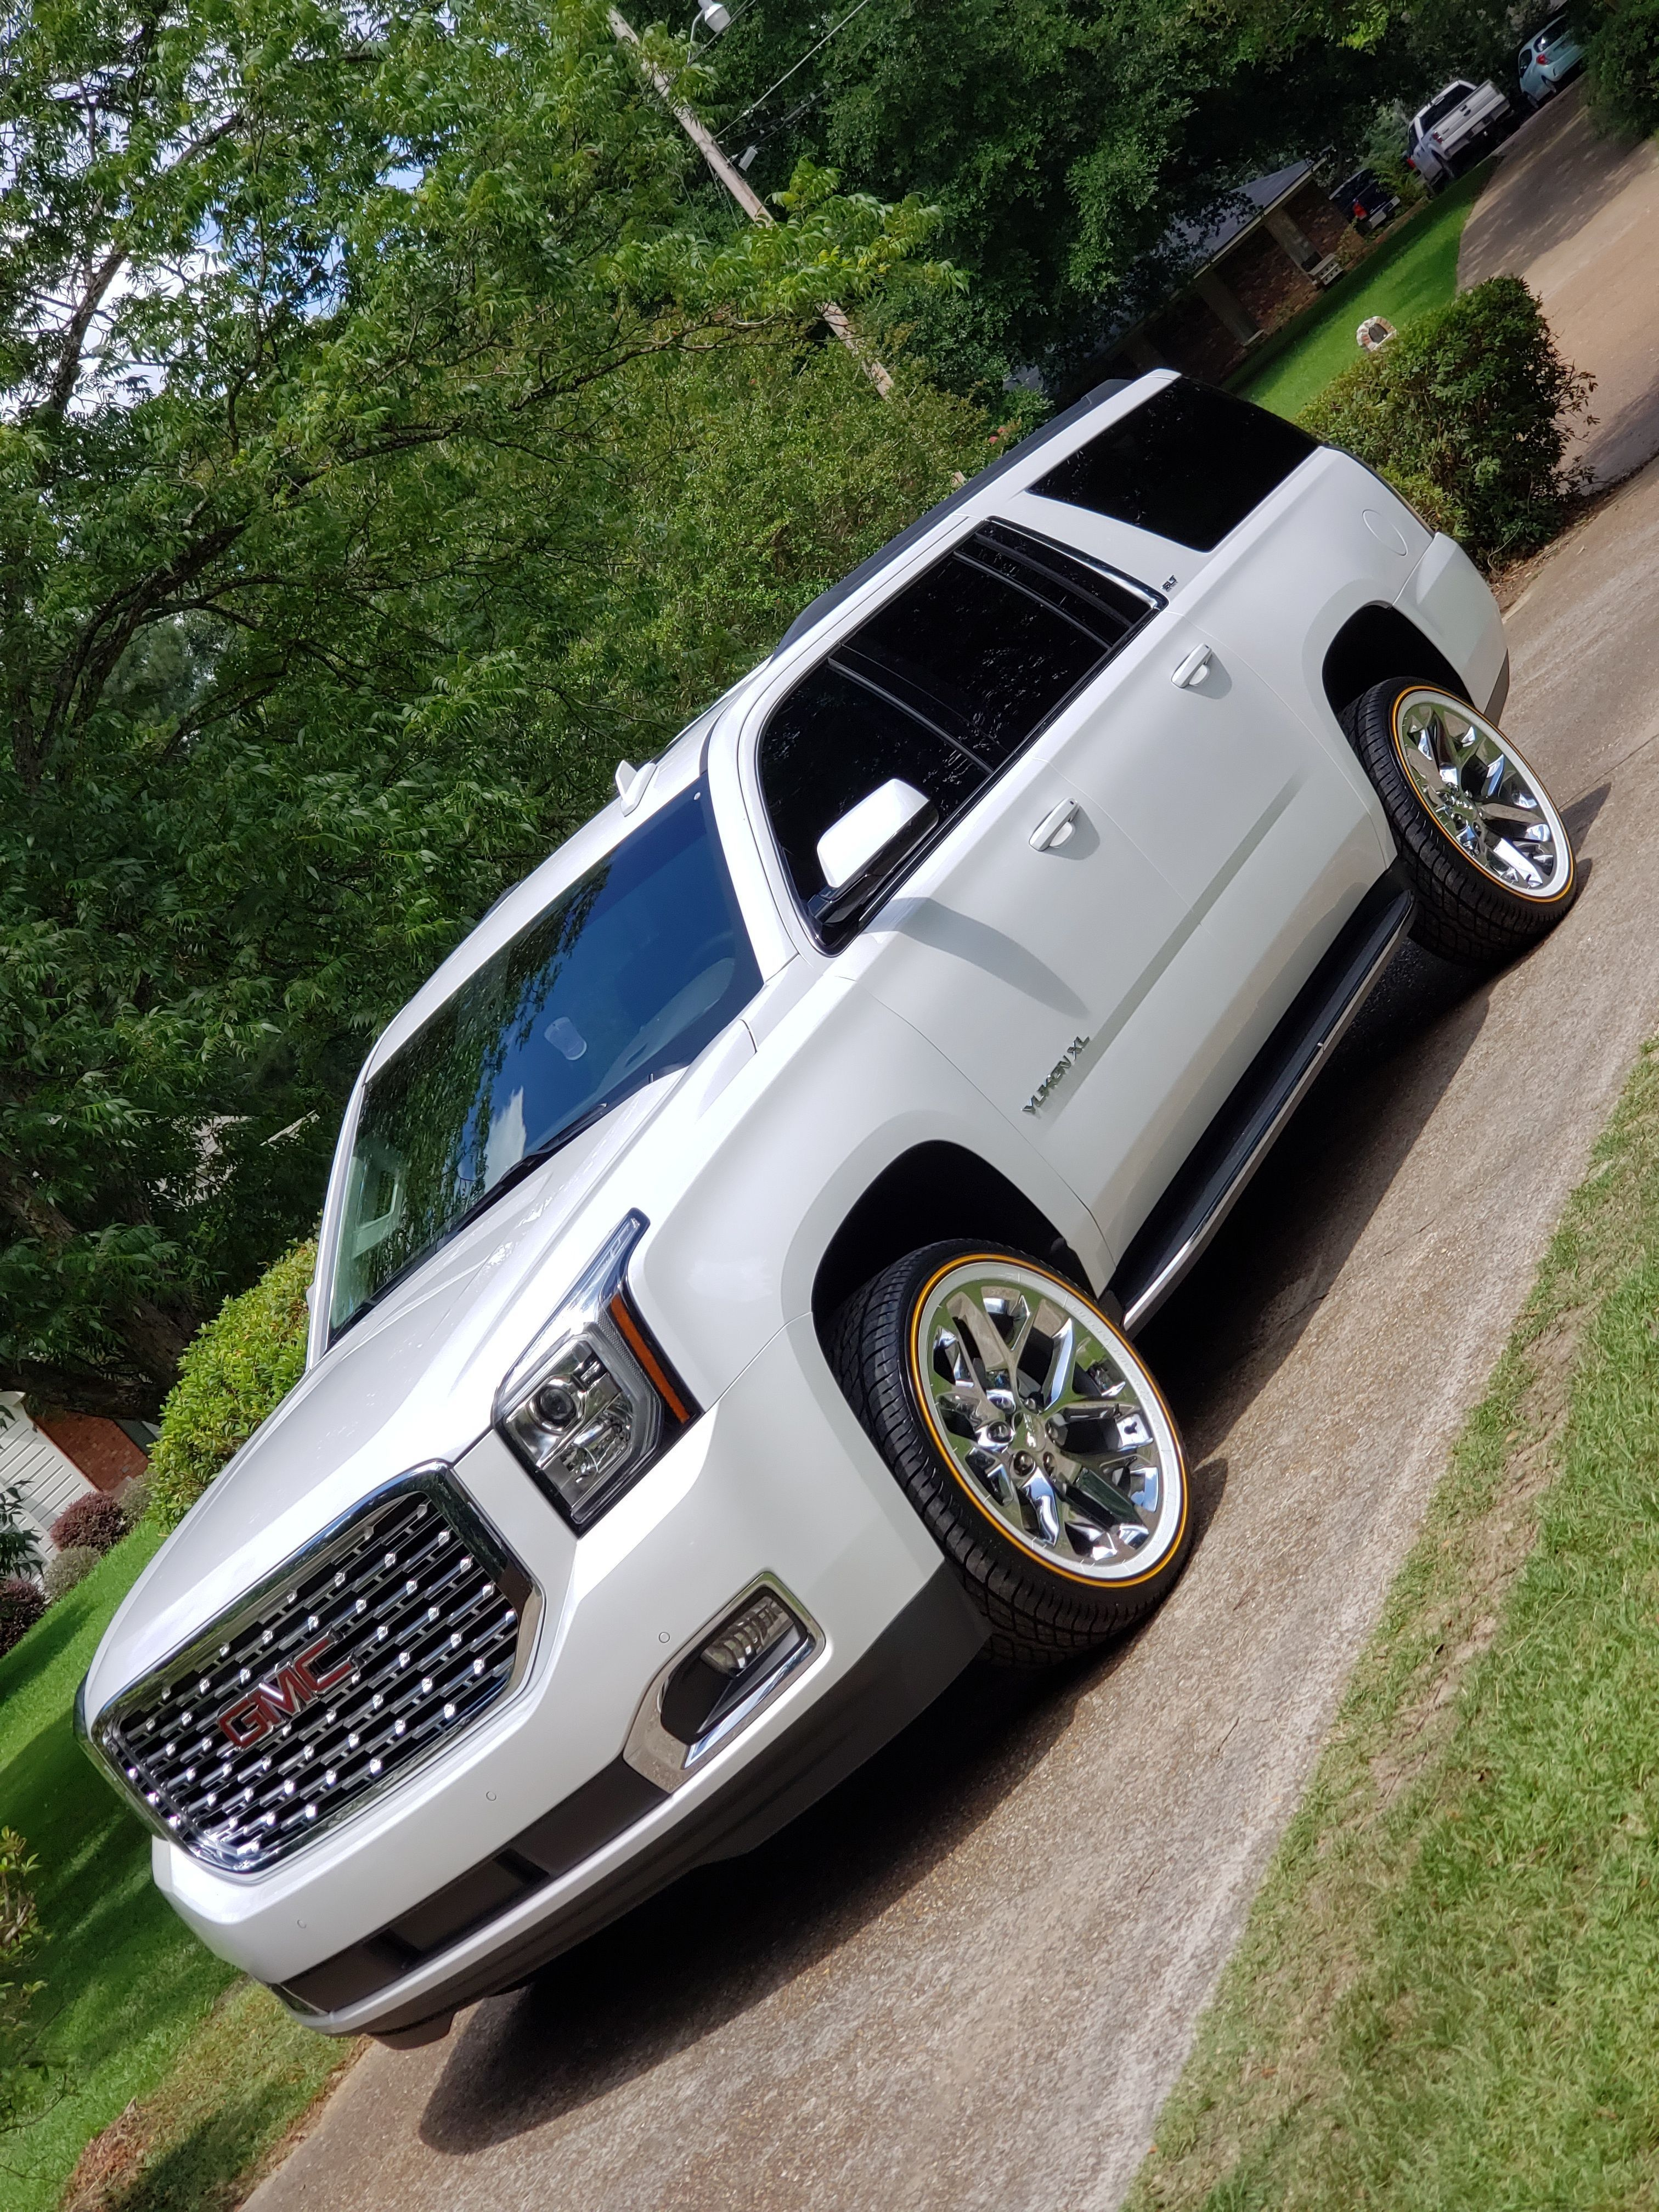 One Mean Machine Gmc Yukon Xl On Vogues Gmc Gmcyukonxl Yukon Yukonxl Vogues Vogue Voguetyres Tires Suv Trucks Jeep Truck Gmc Trucks